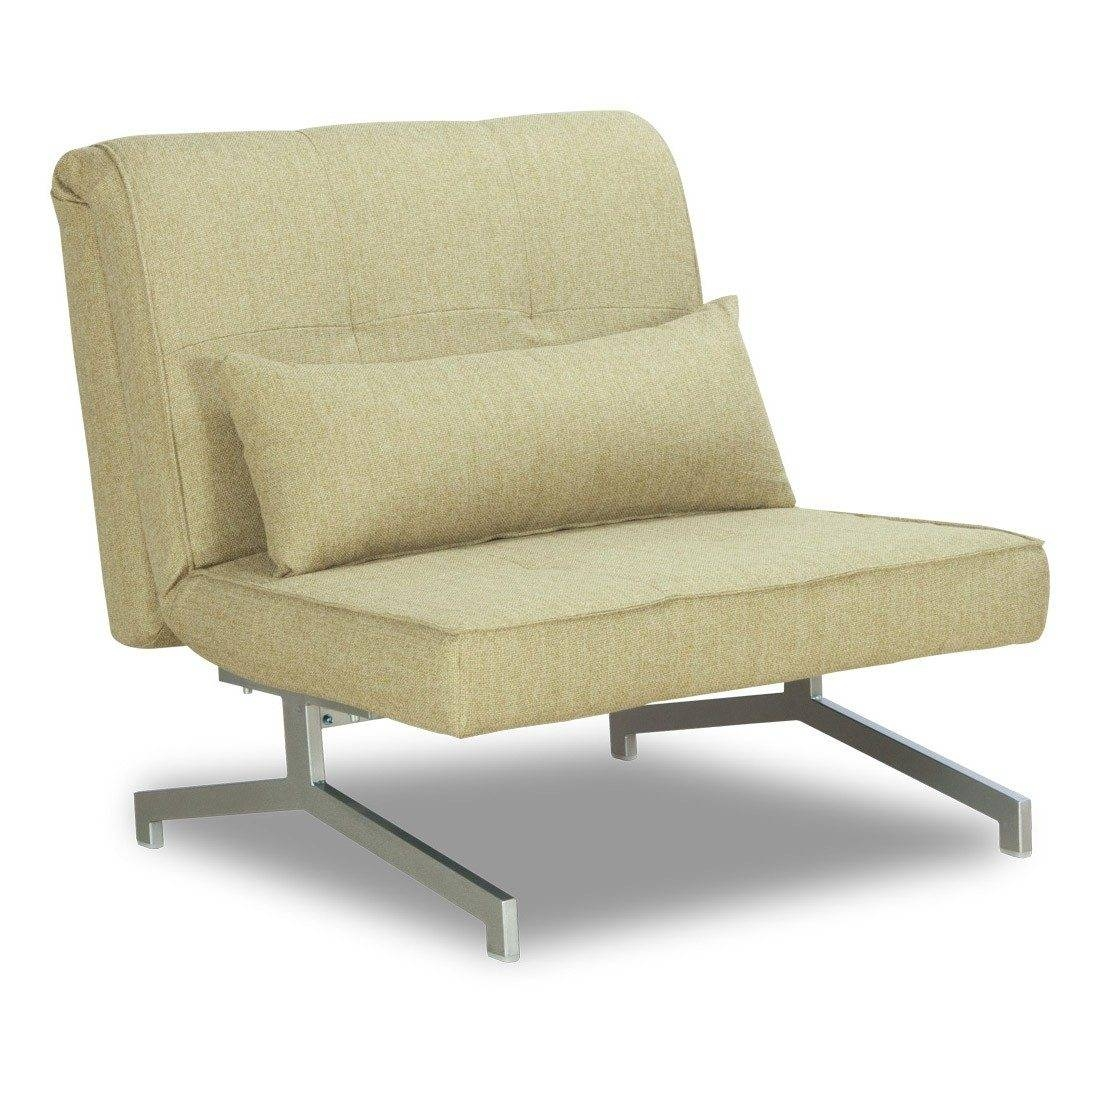 Chair Sofa Sleeper | Sofa Gallery | Kengire throughout Single Chair Sofa Beds (Image 8 of 30)